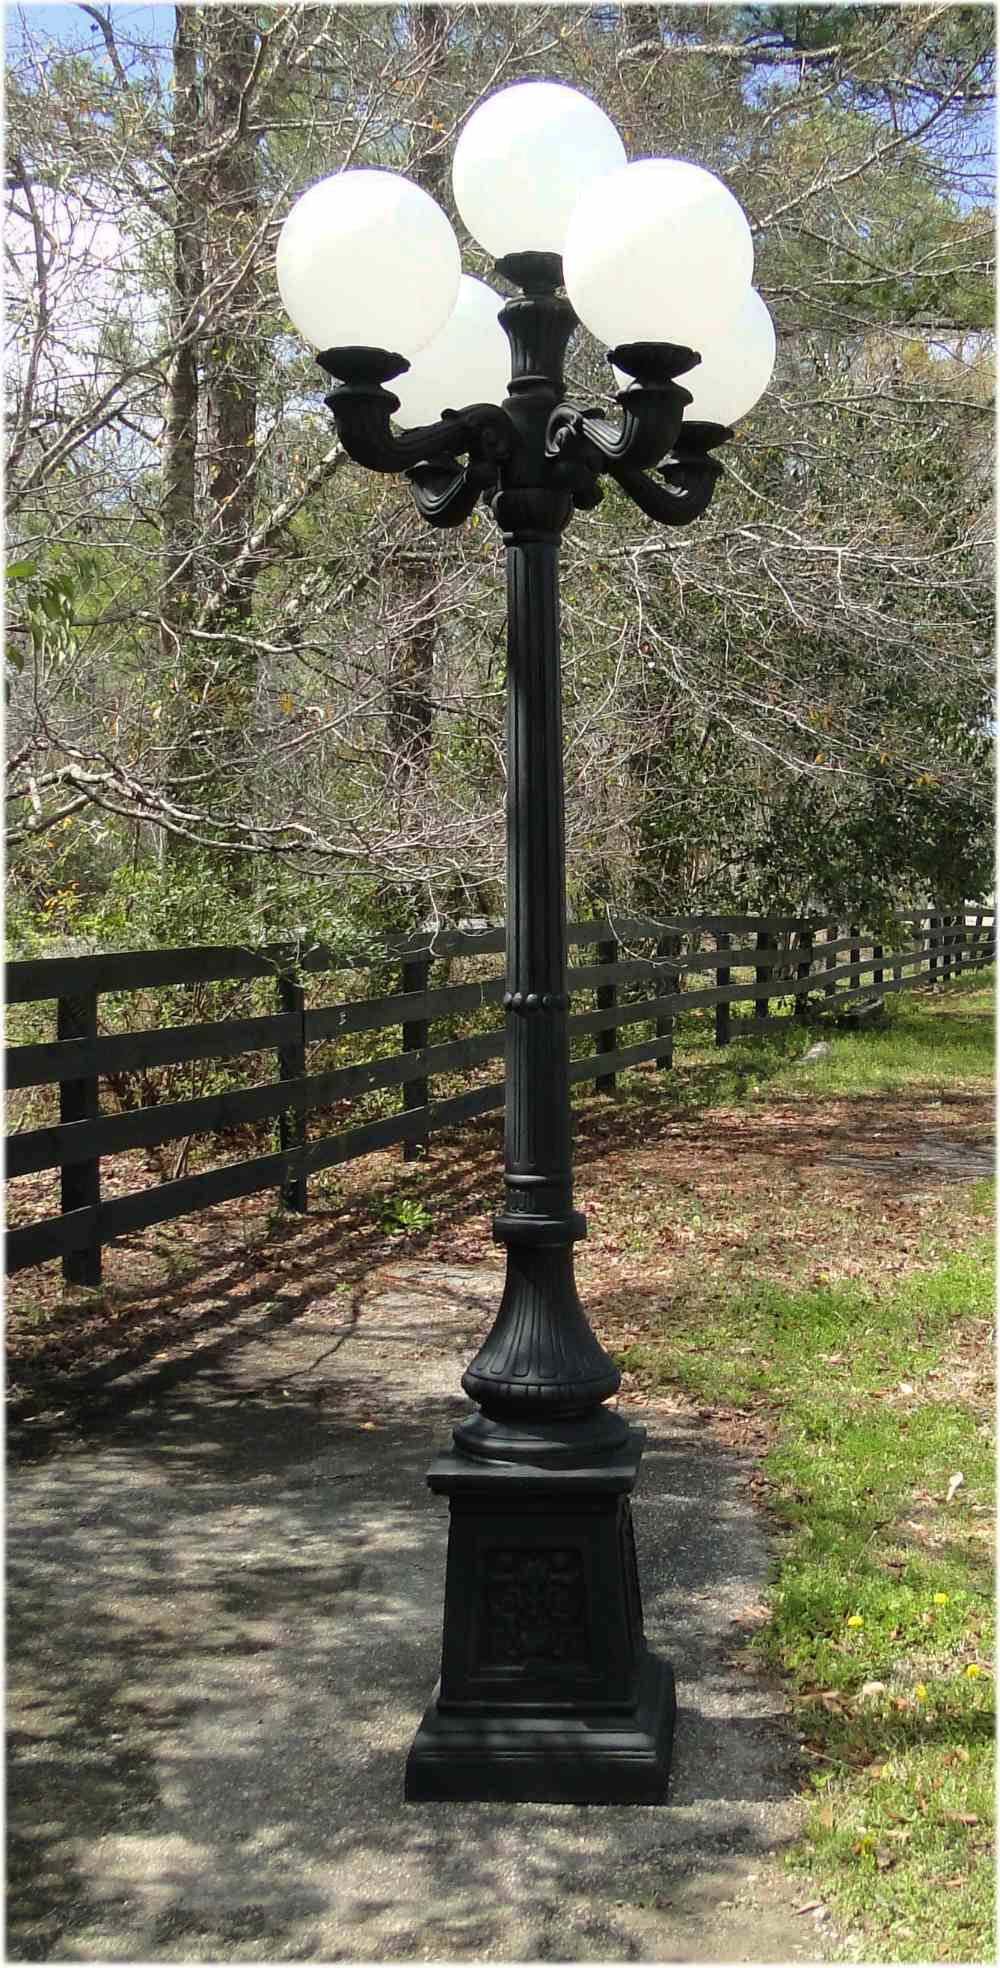 Outdoor Pole Lighting Fixtures Outdoor 5 arm pole light 95 tall victorian replica vintage outdoor 5 arm pole light 95 tall victorian replica vintage commercial or home workwithnaturefo